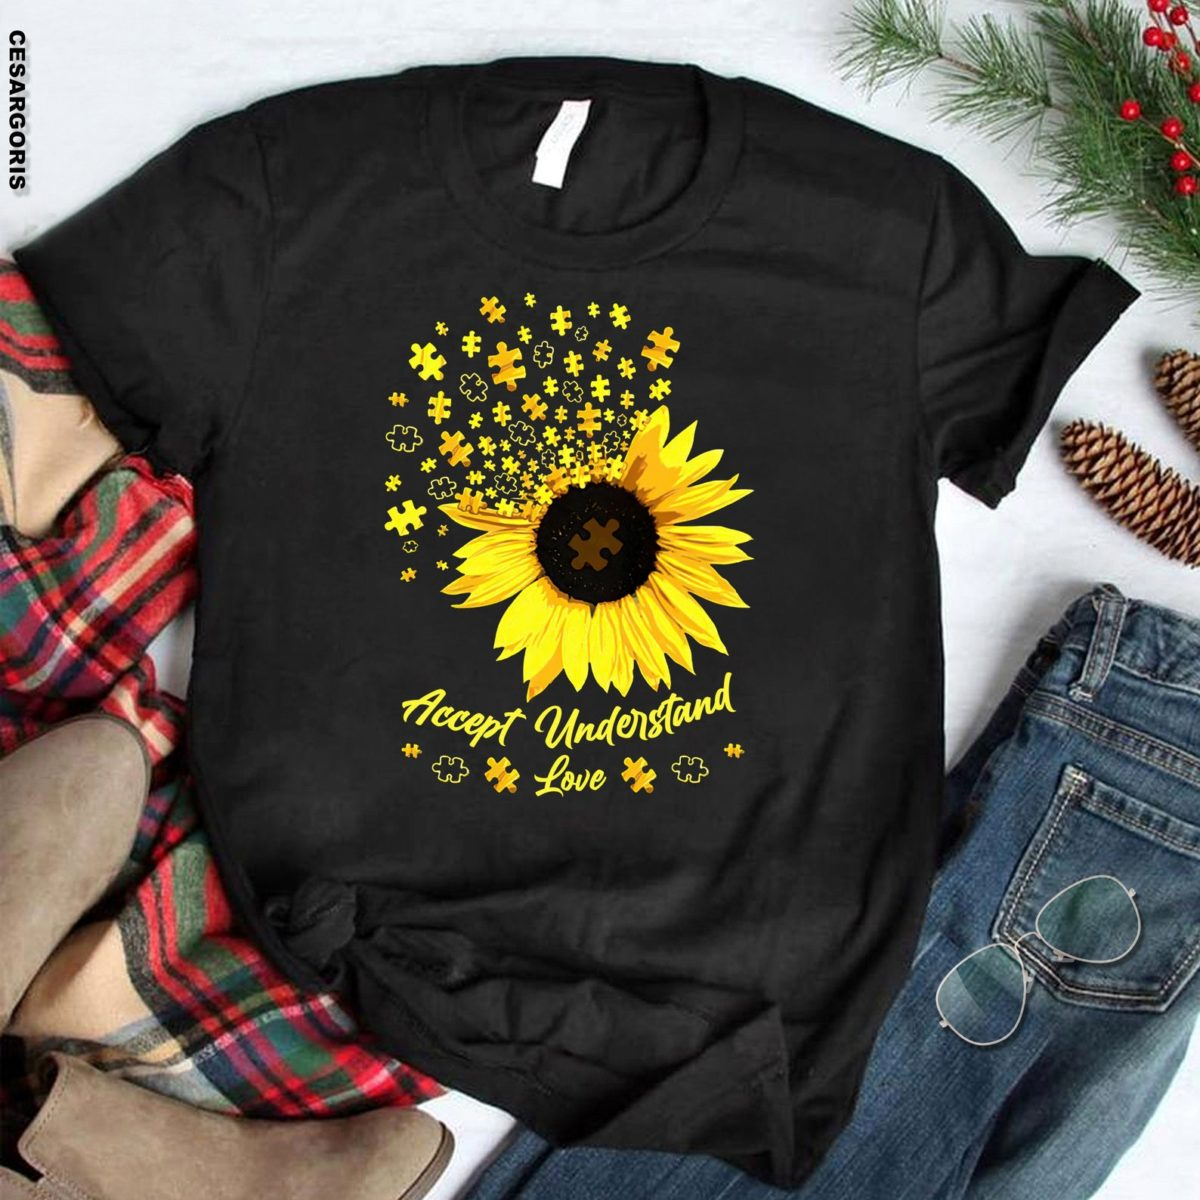 26 awesome etsy t-shirts that send a positive message and make great gifts | parenting questions | mamas uncut il 1588xn.2933668360 knwz